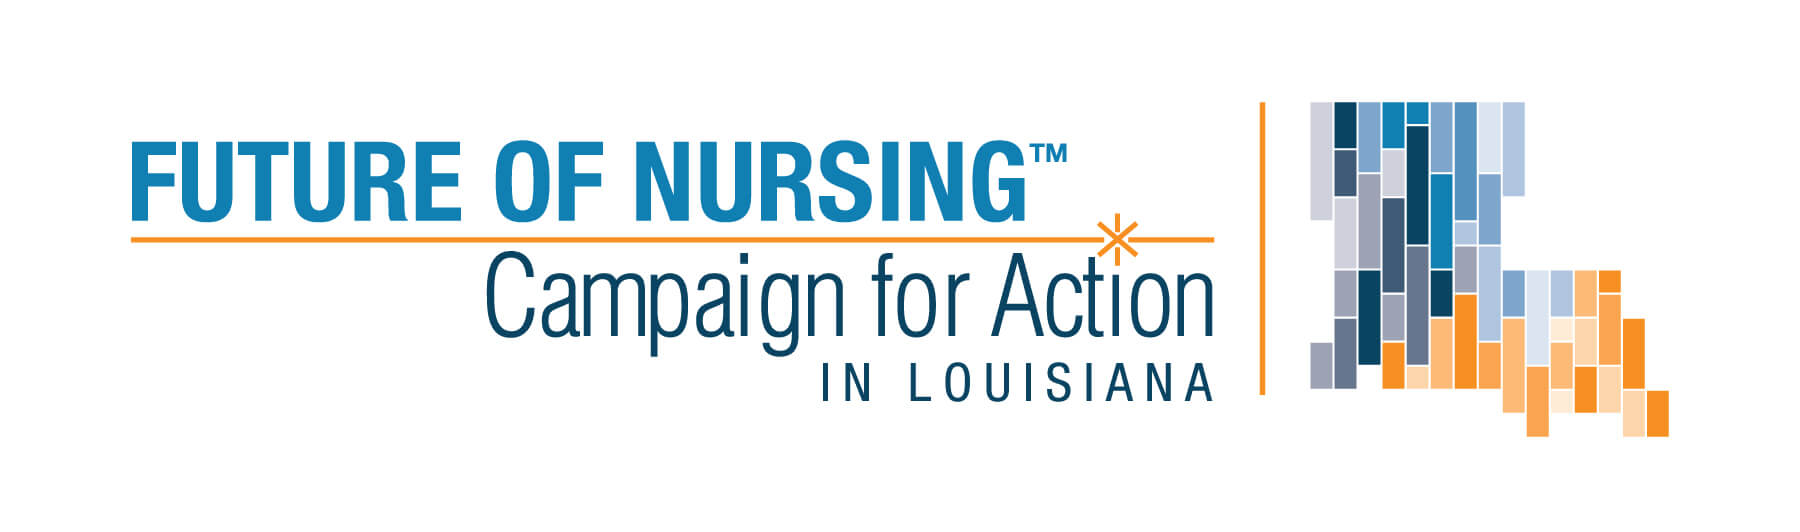 Louisiana Action Coalition logo